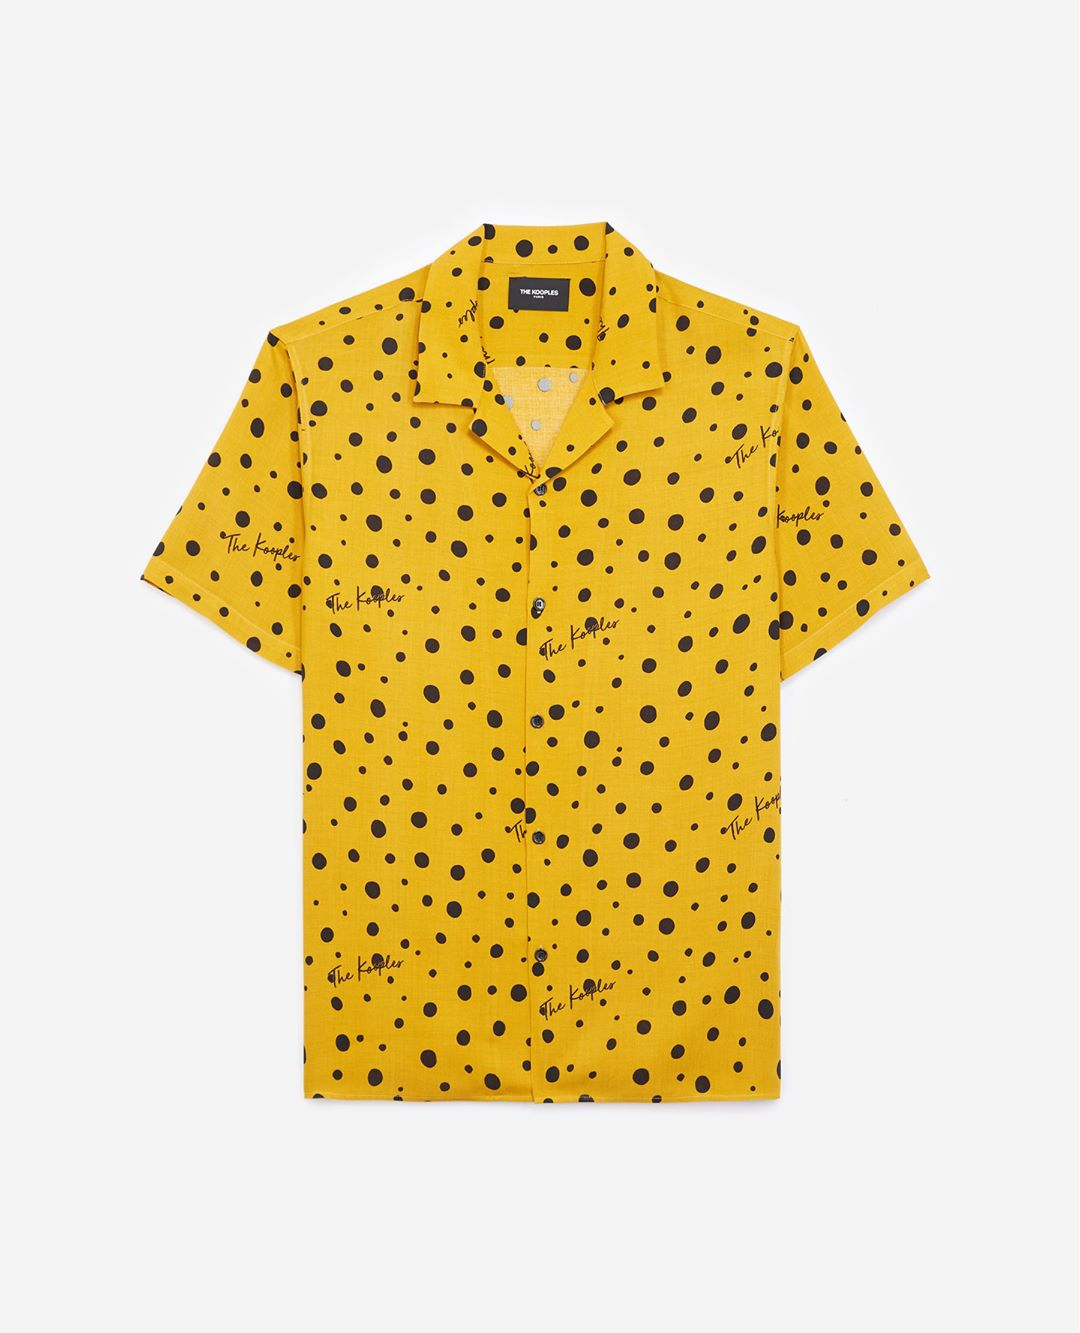 The Kooples - Printed yellow shirt with short sleeves - MEN